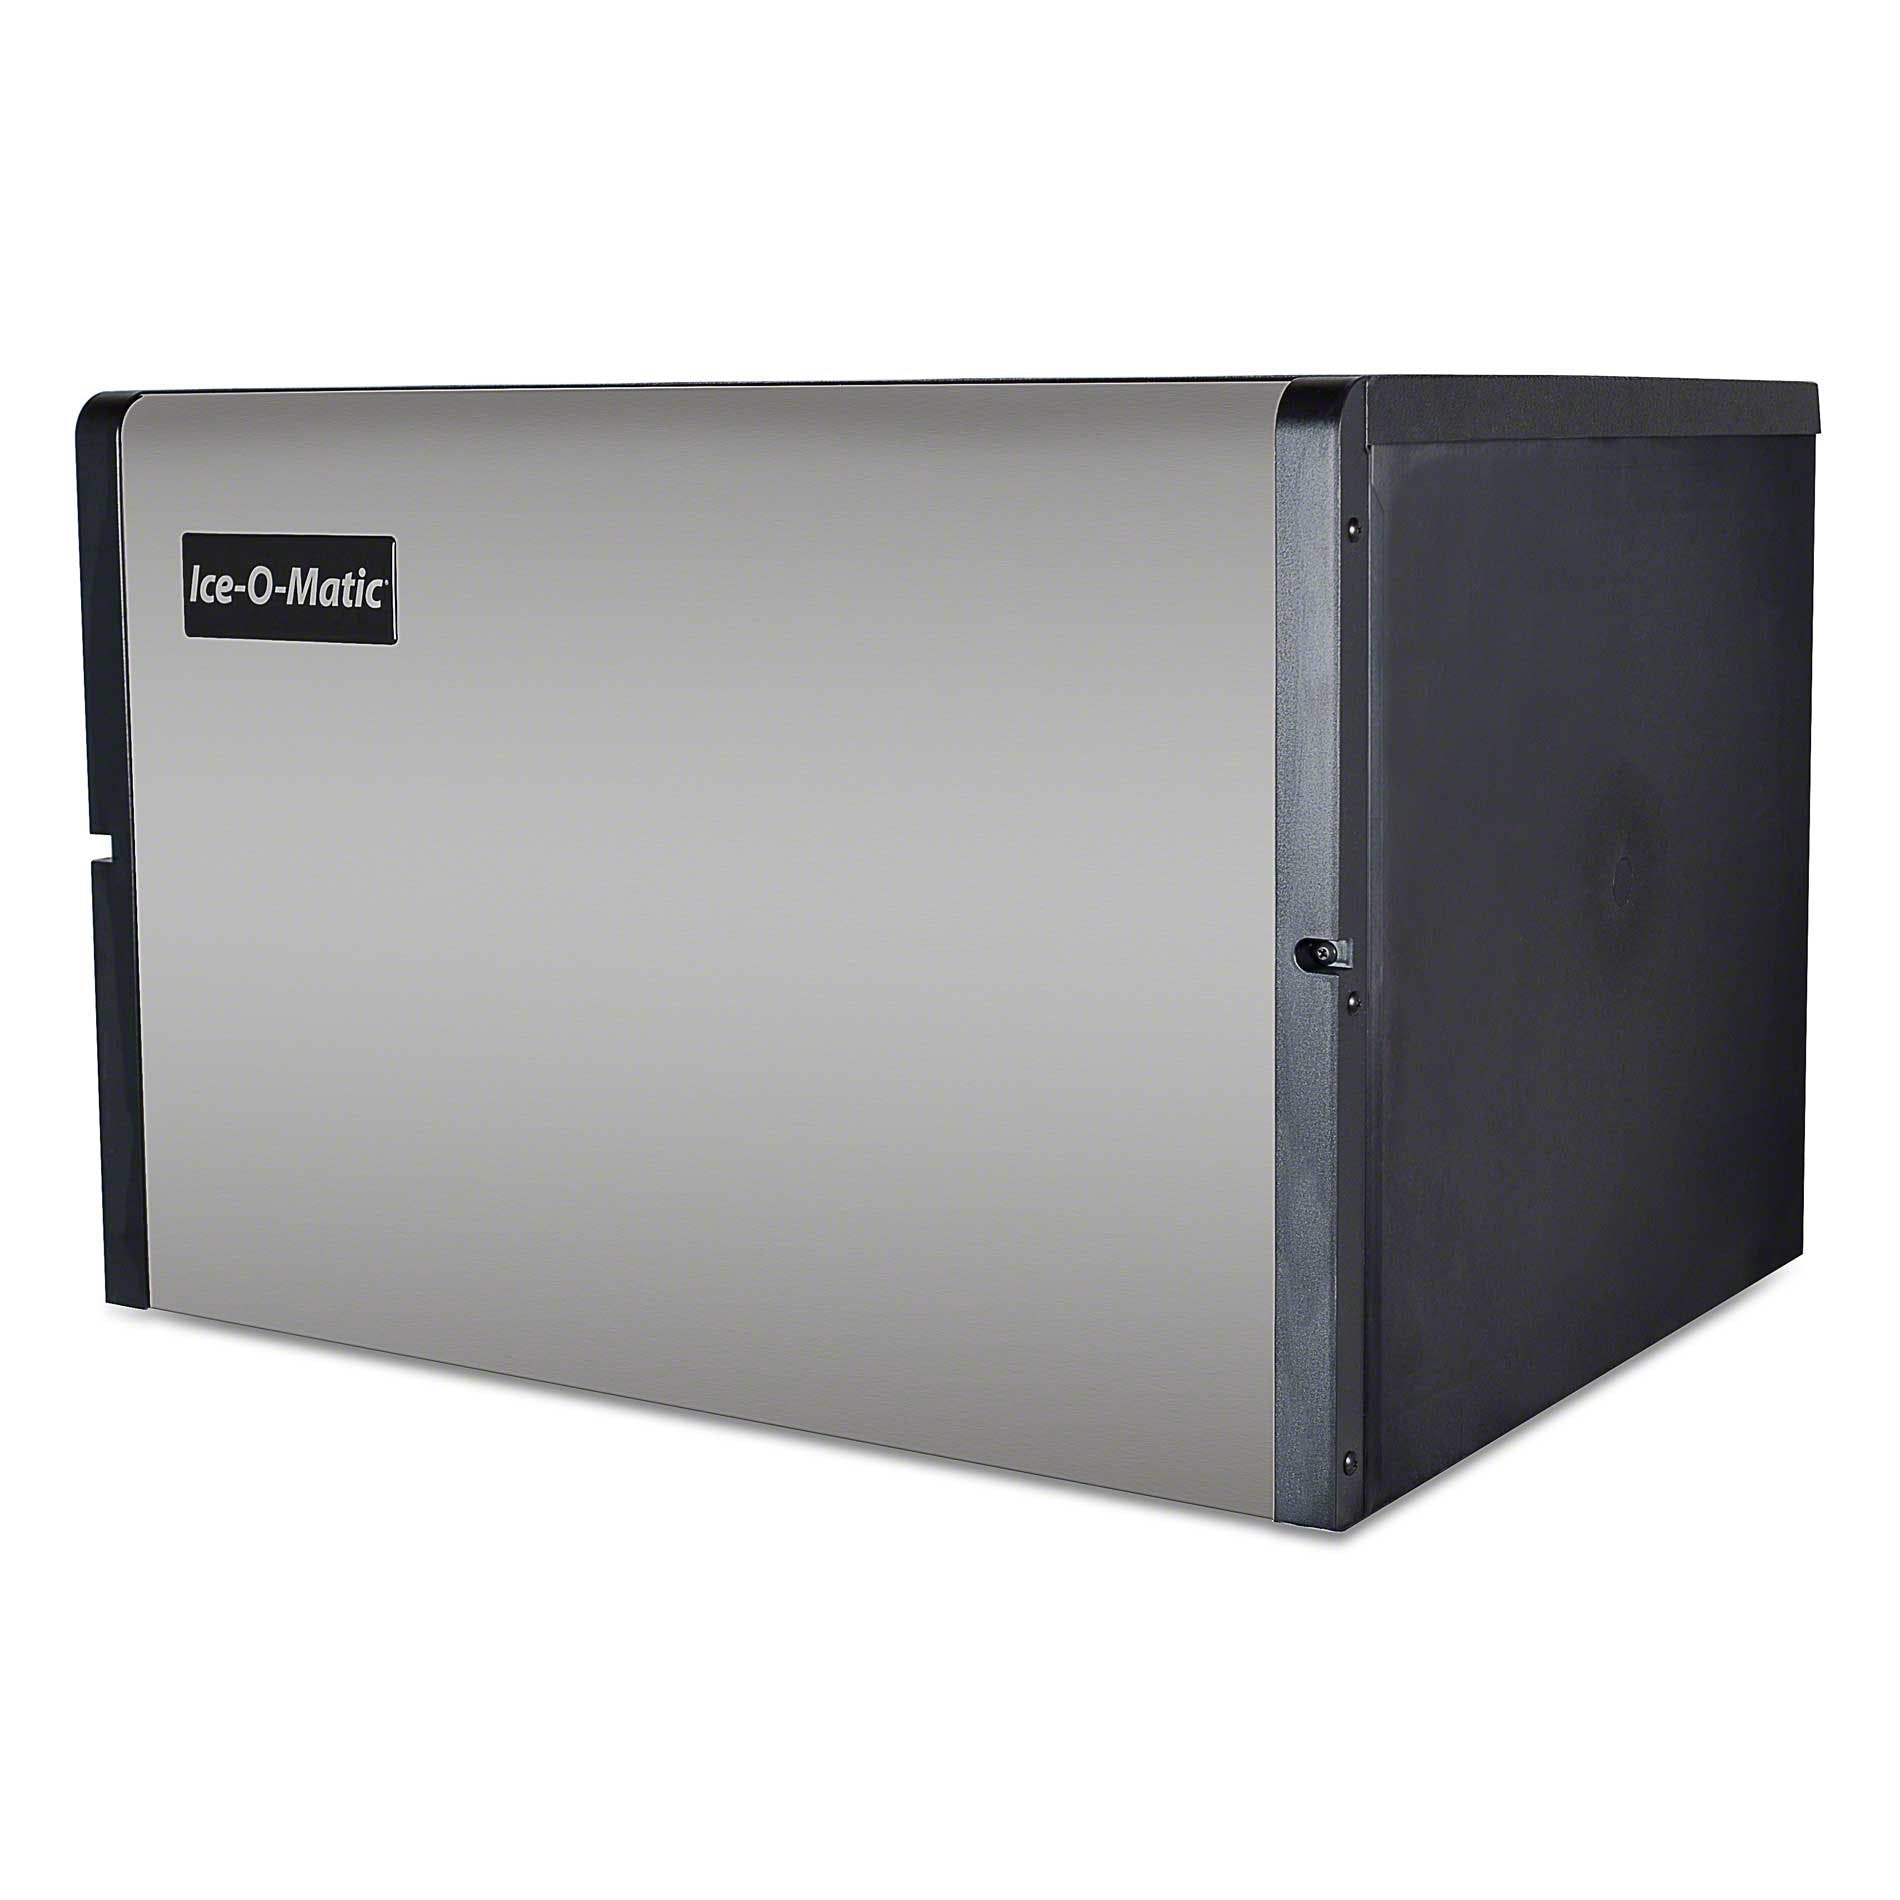 Ice-O-Matic - ICE0500HW 596 lb Half Cube Ice Machine - sold by Food Service Warehouse